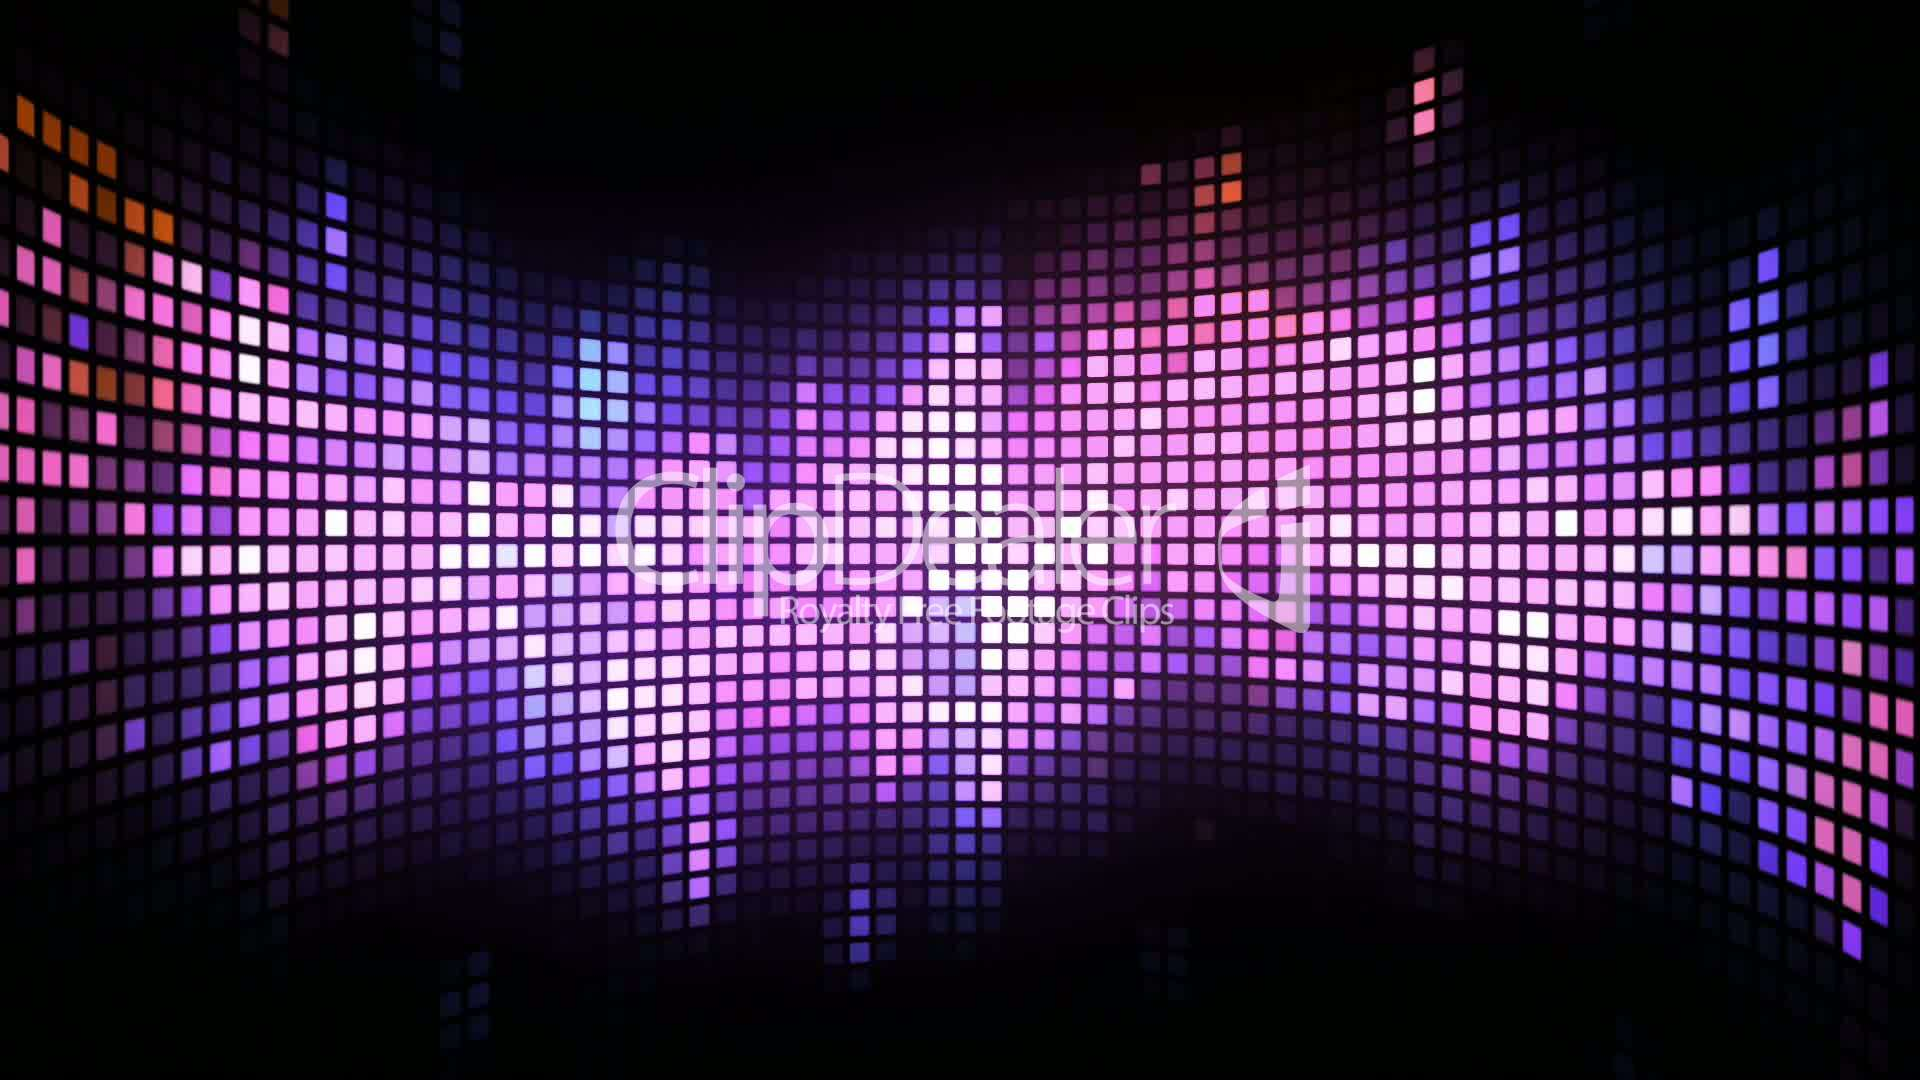 Curved Dance Light Box Background Royalty Free Video And Stock